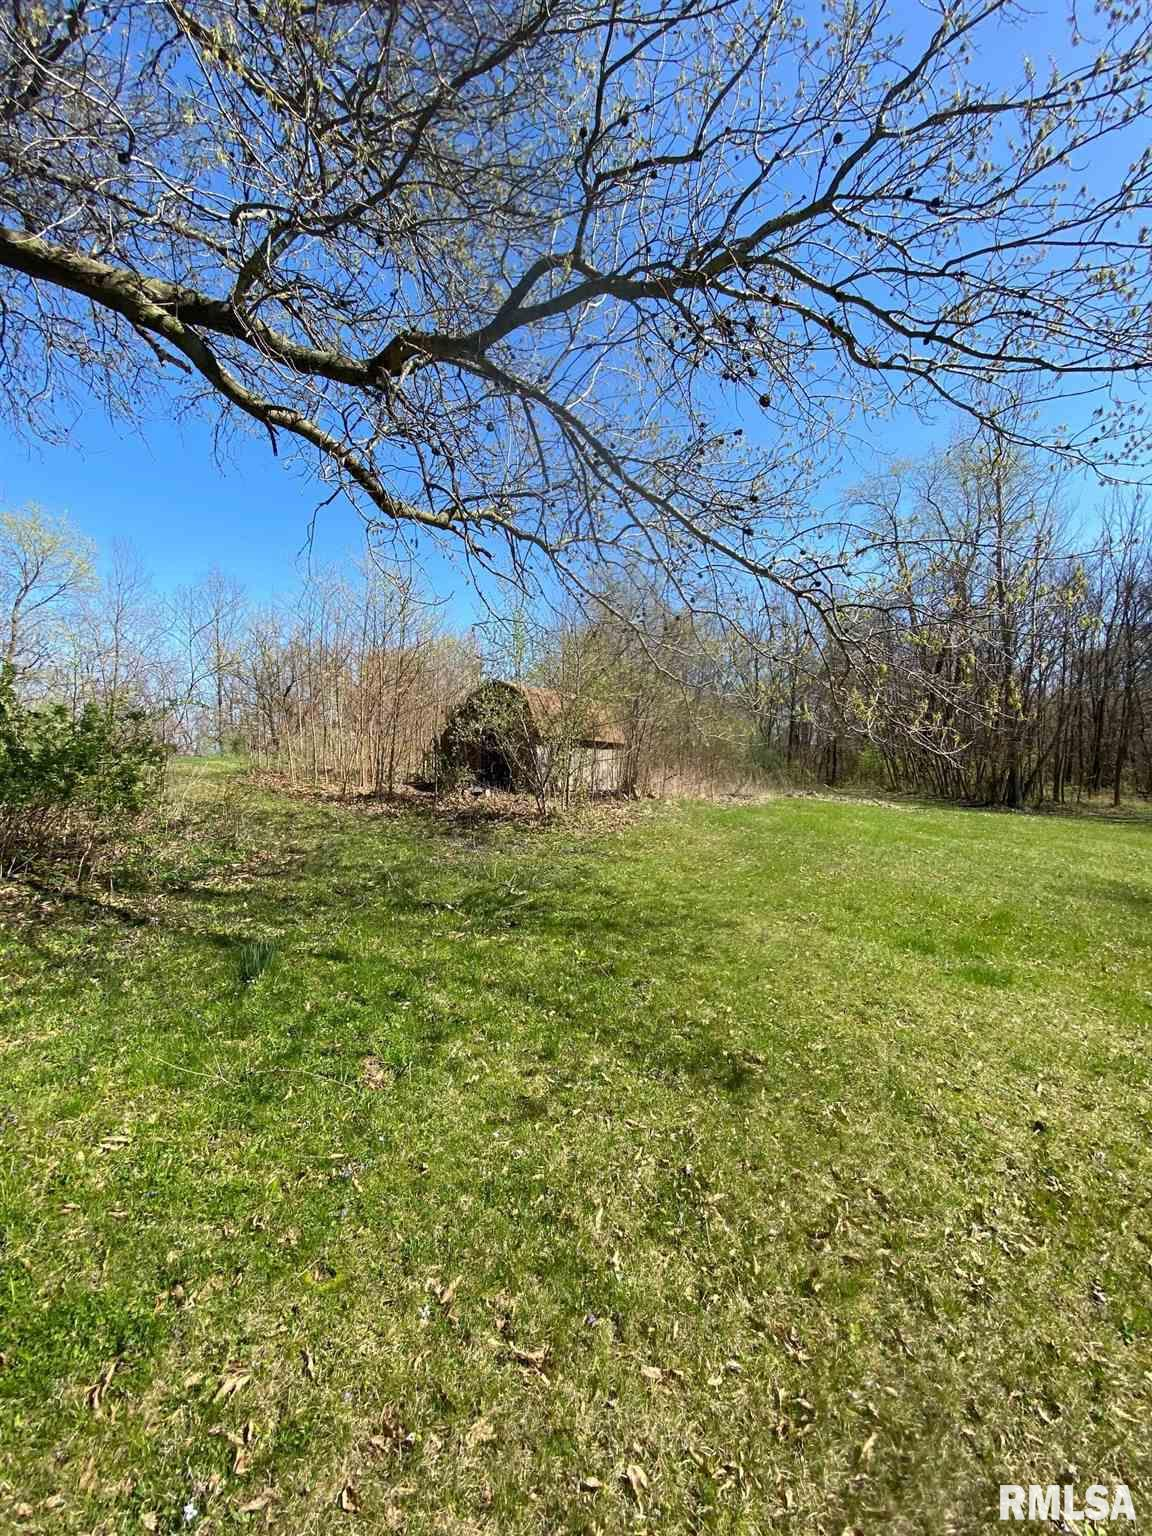 14750 Nave Property Photo - Mechanicsburg, IL real estate listing